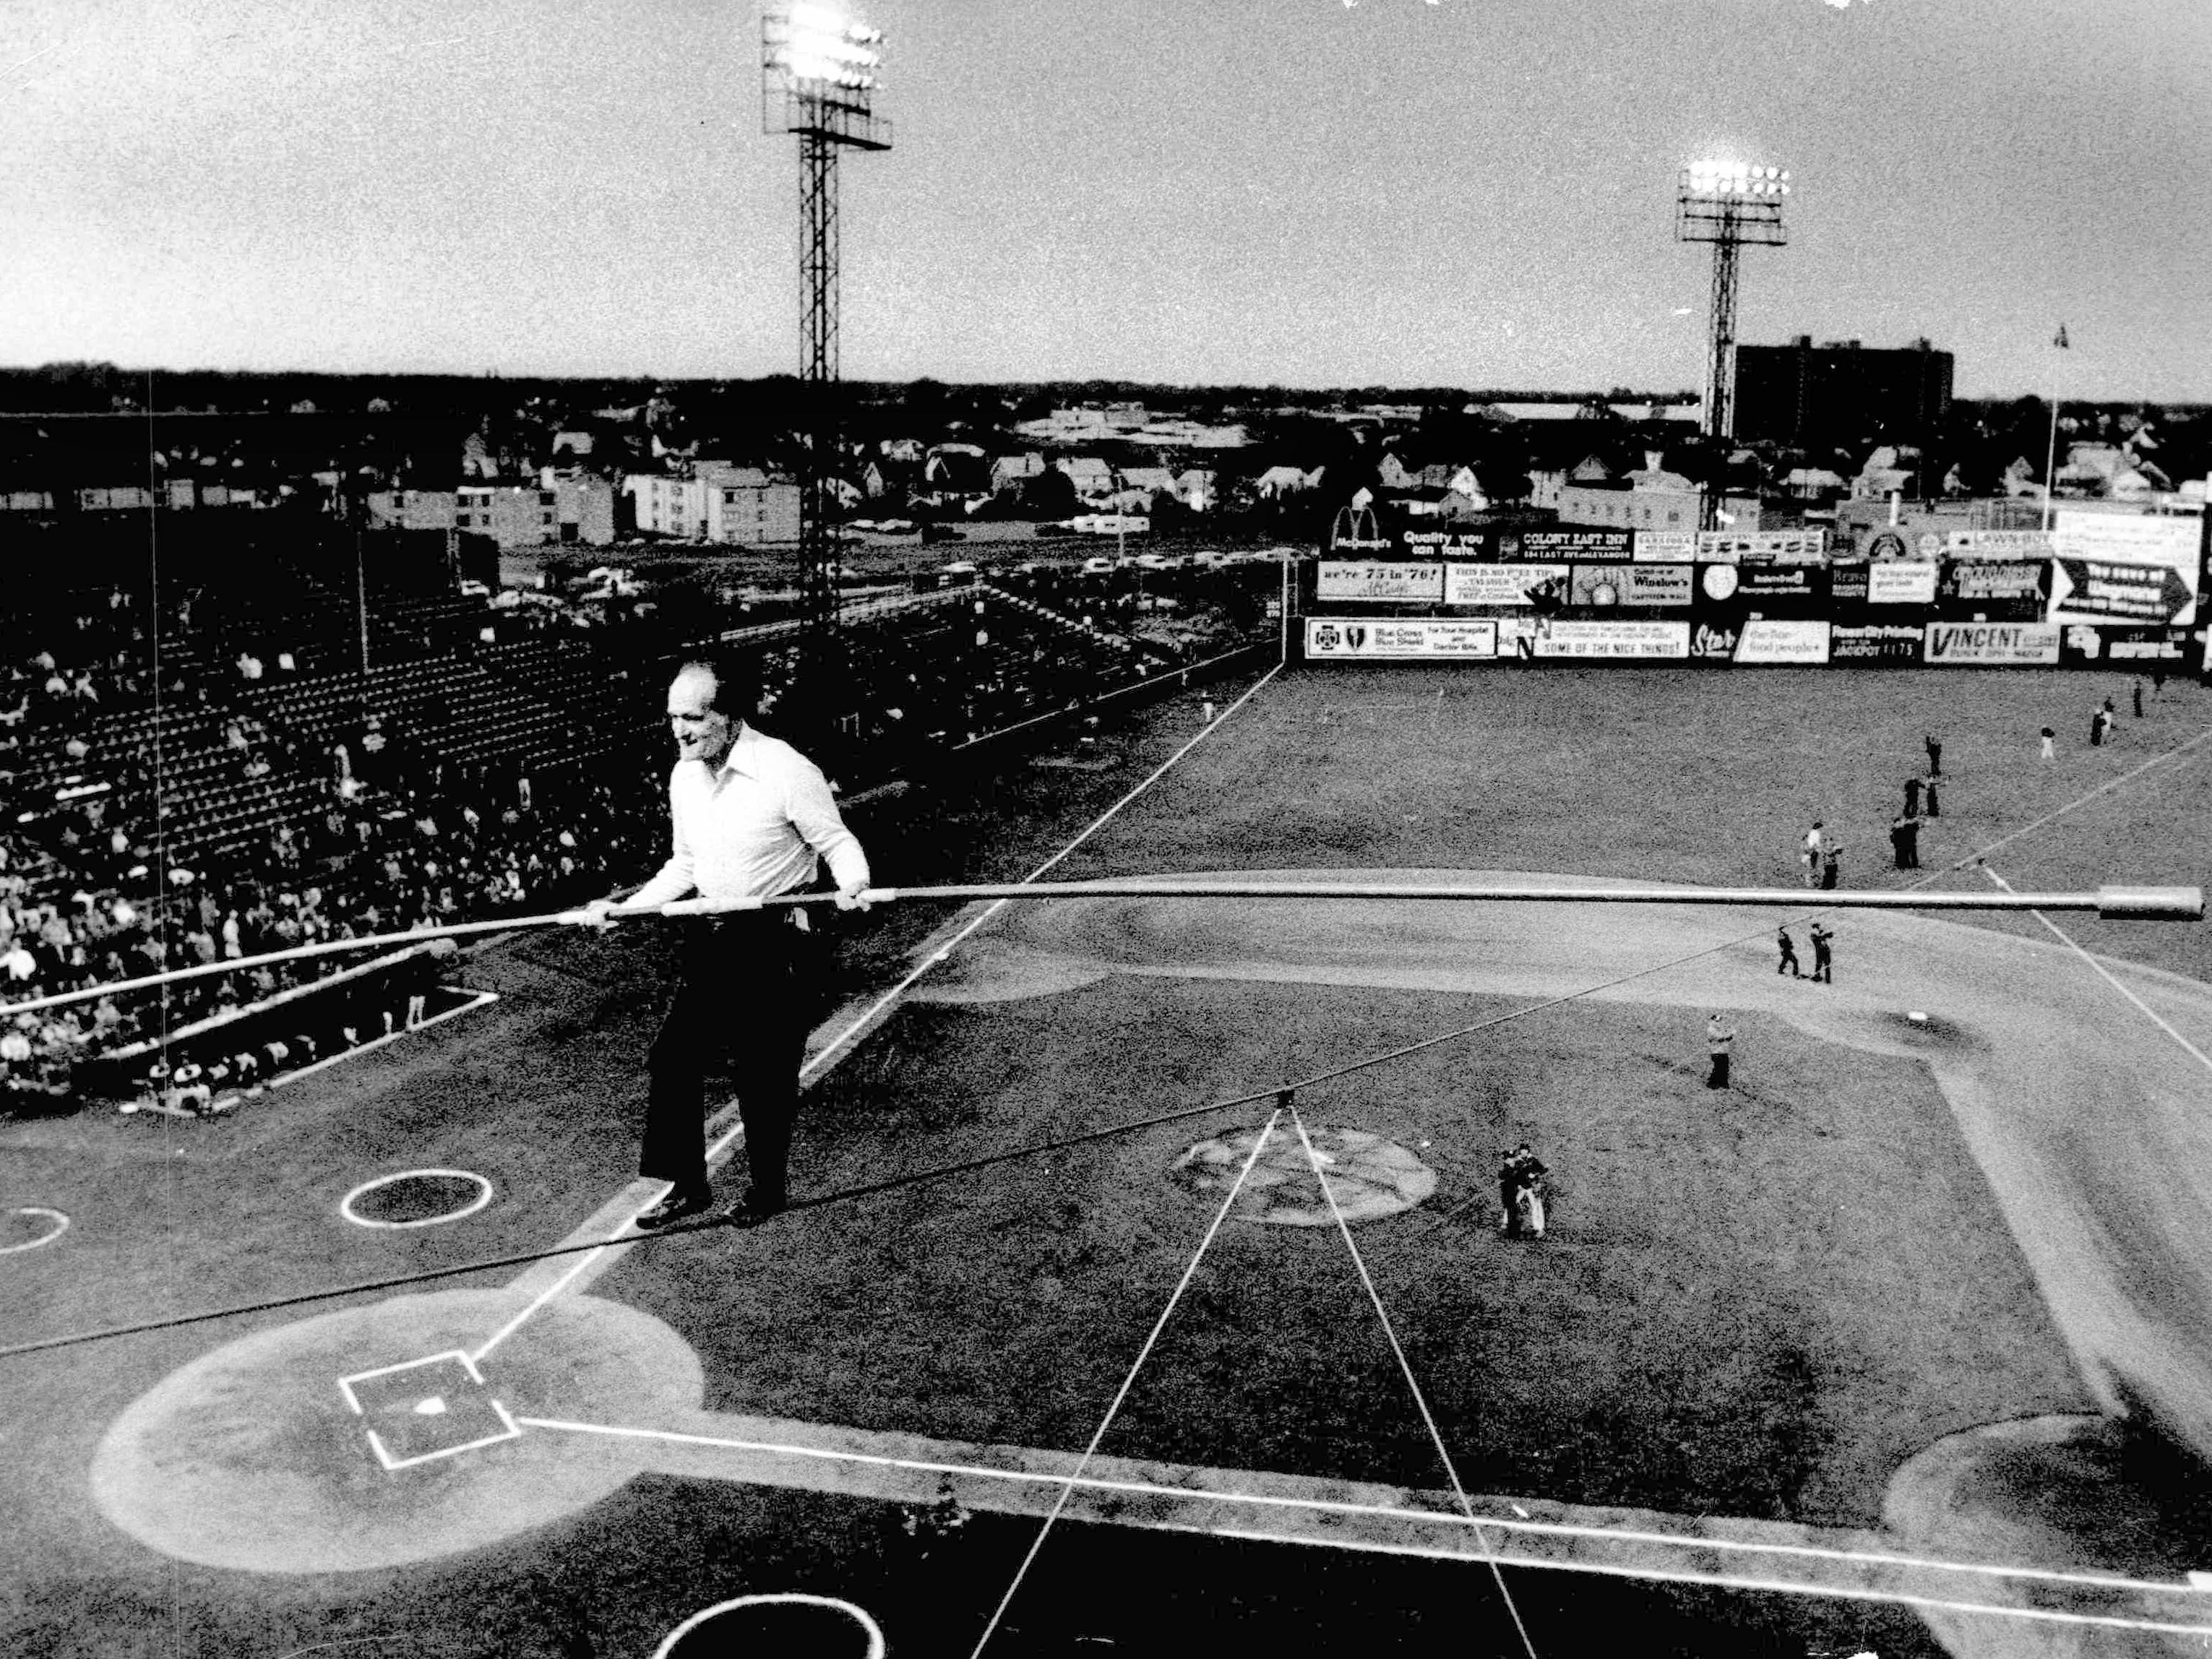 This 1976 photo shows Karl Wallenda walking a tightrope between scoreboard and the roof during doubleheader at Silver Stadium.